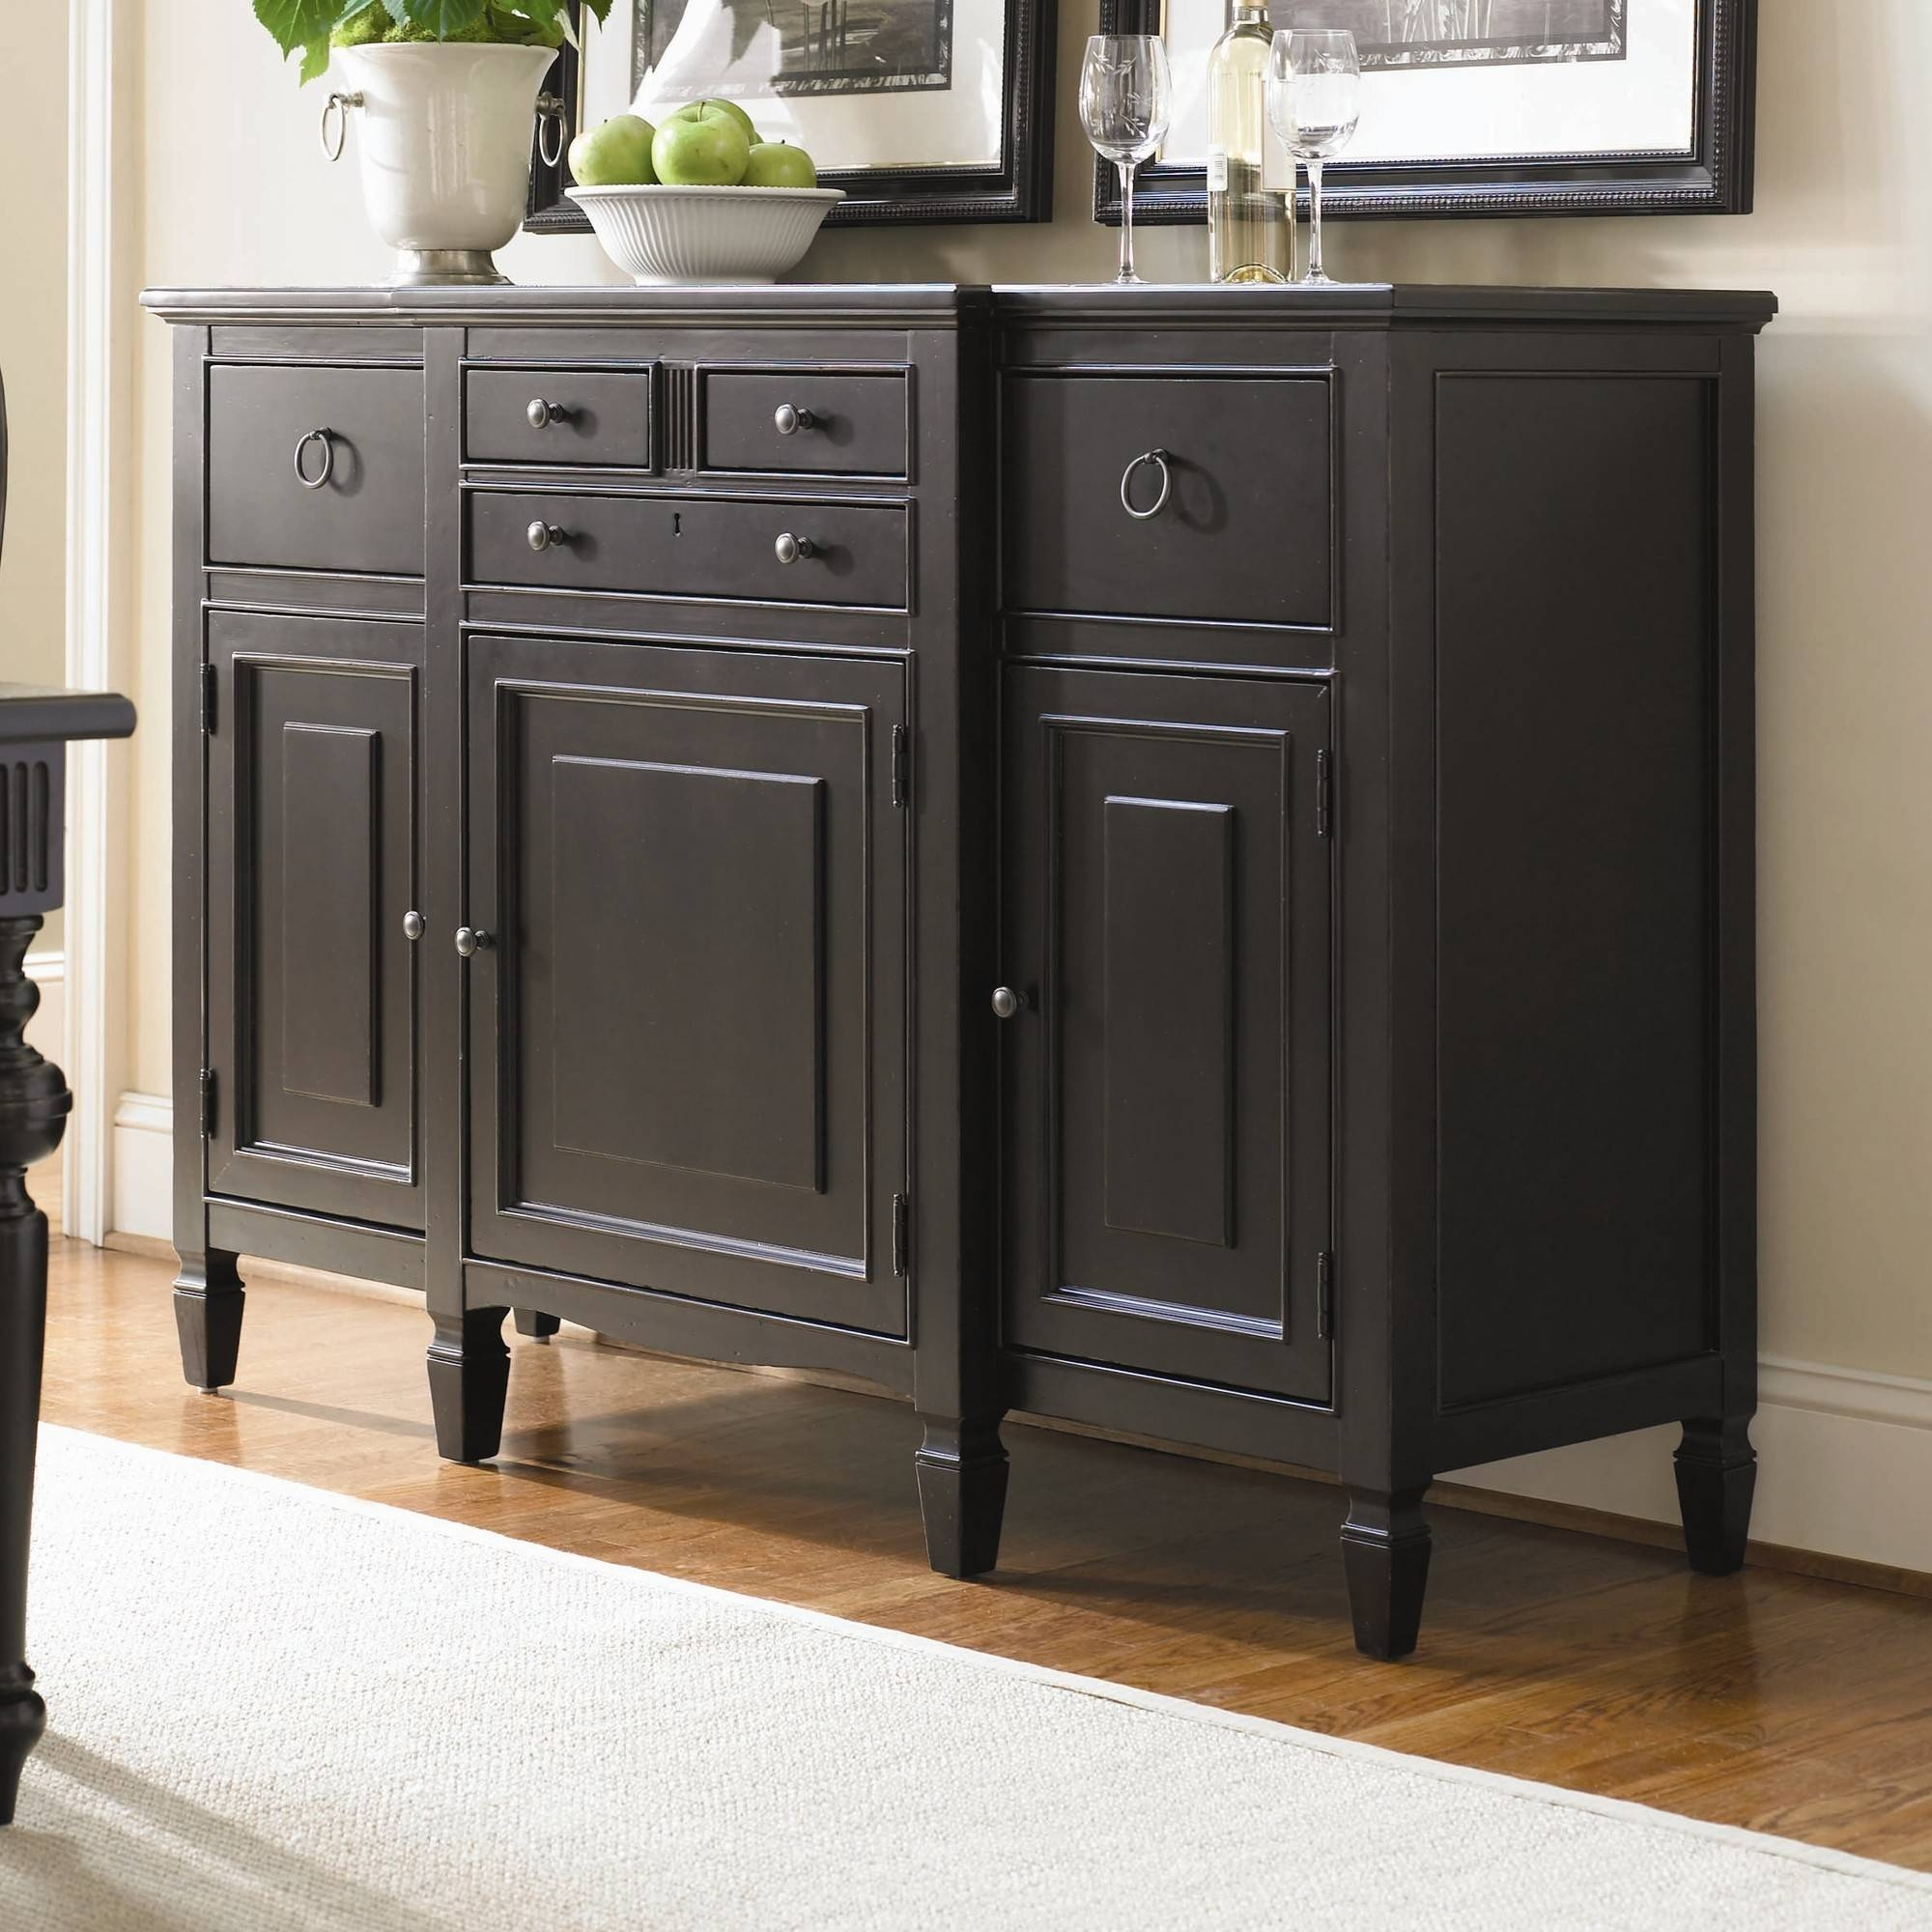 Unique Black Sideboard Buffet – Bjdgjy Pertaining To Newest Sideboards And Buffet Tables (#15 of 15)